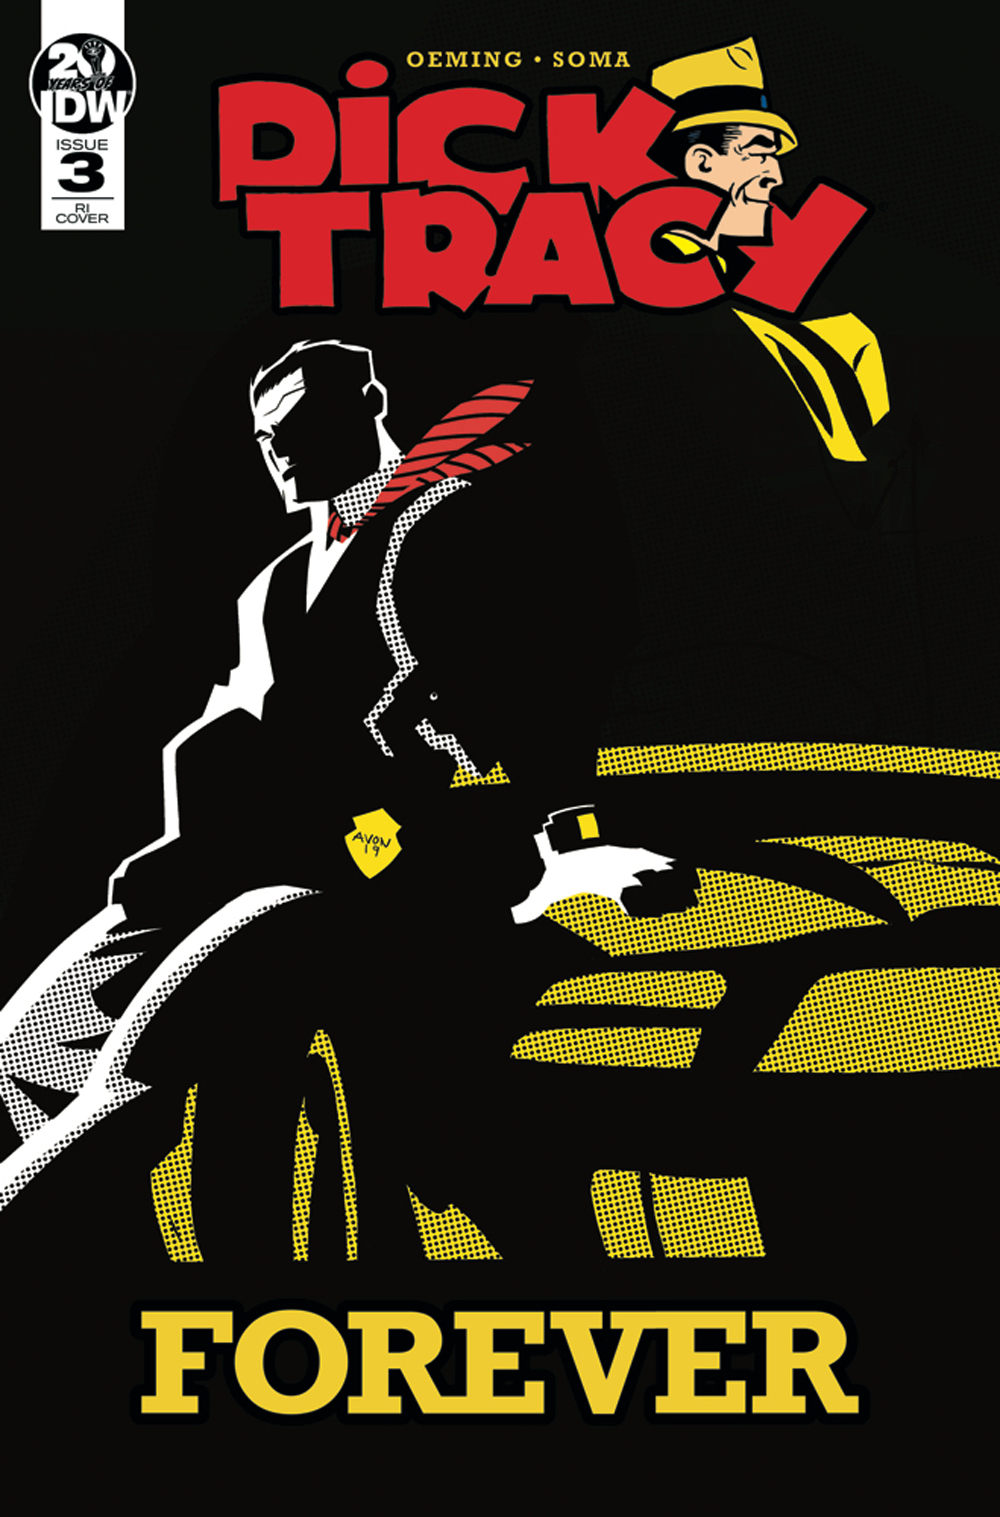 DICK TRACY FOREVER #3 10 COPY INCV OEMING